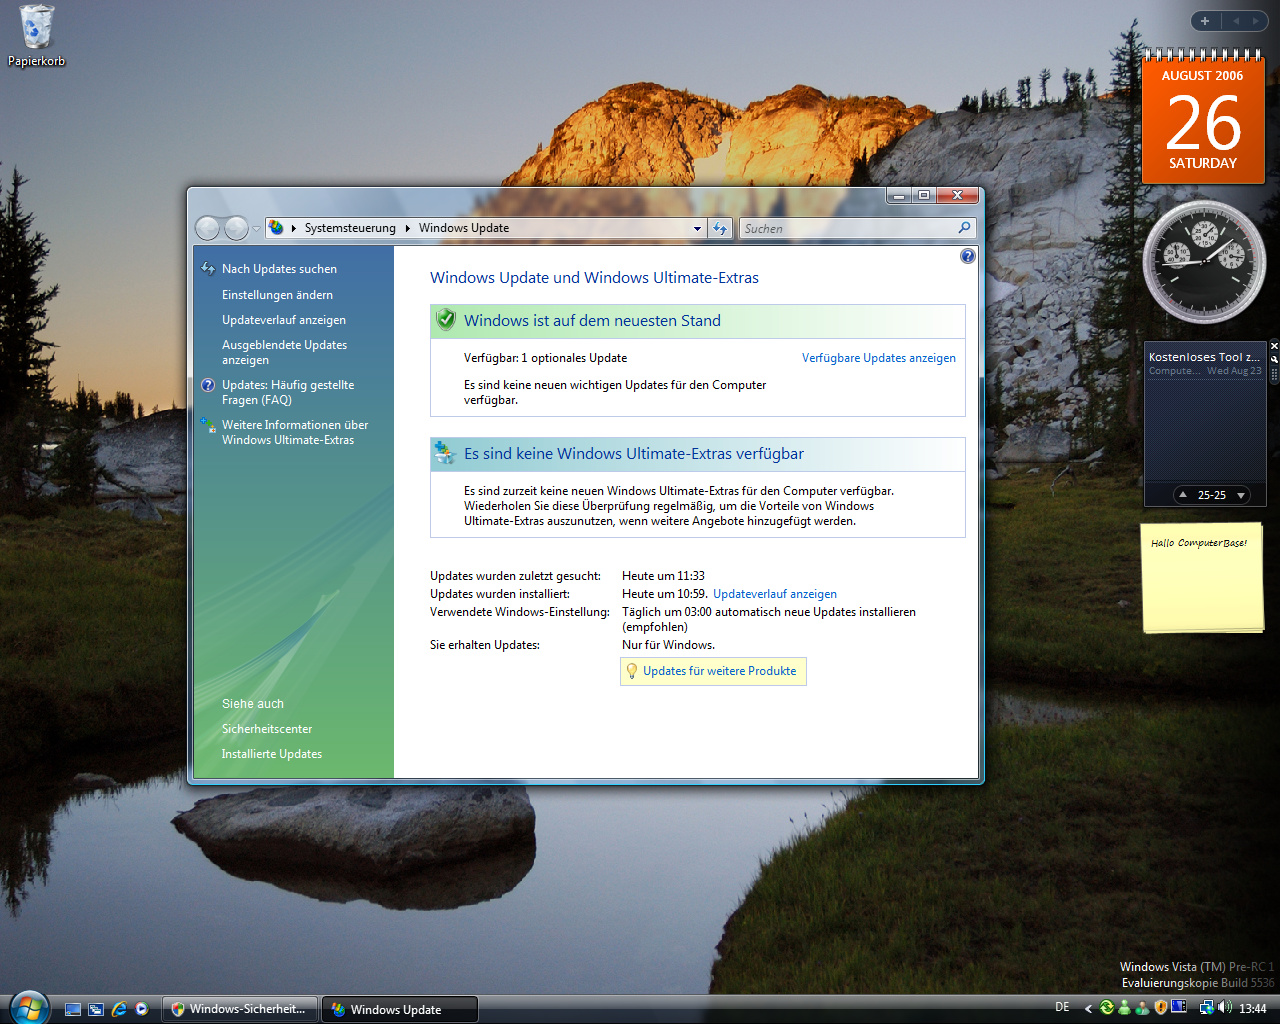 Windows Vista Build 5536 - Update